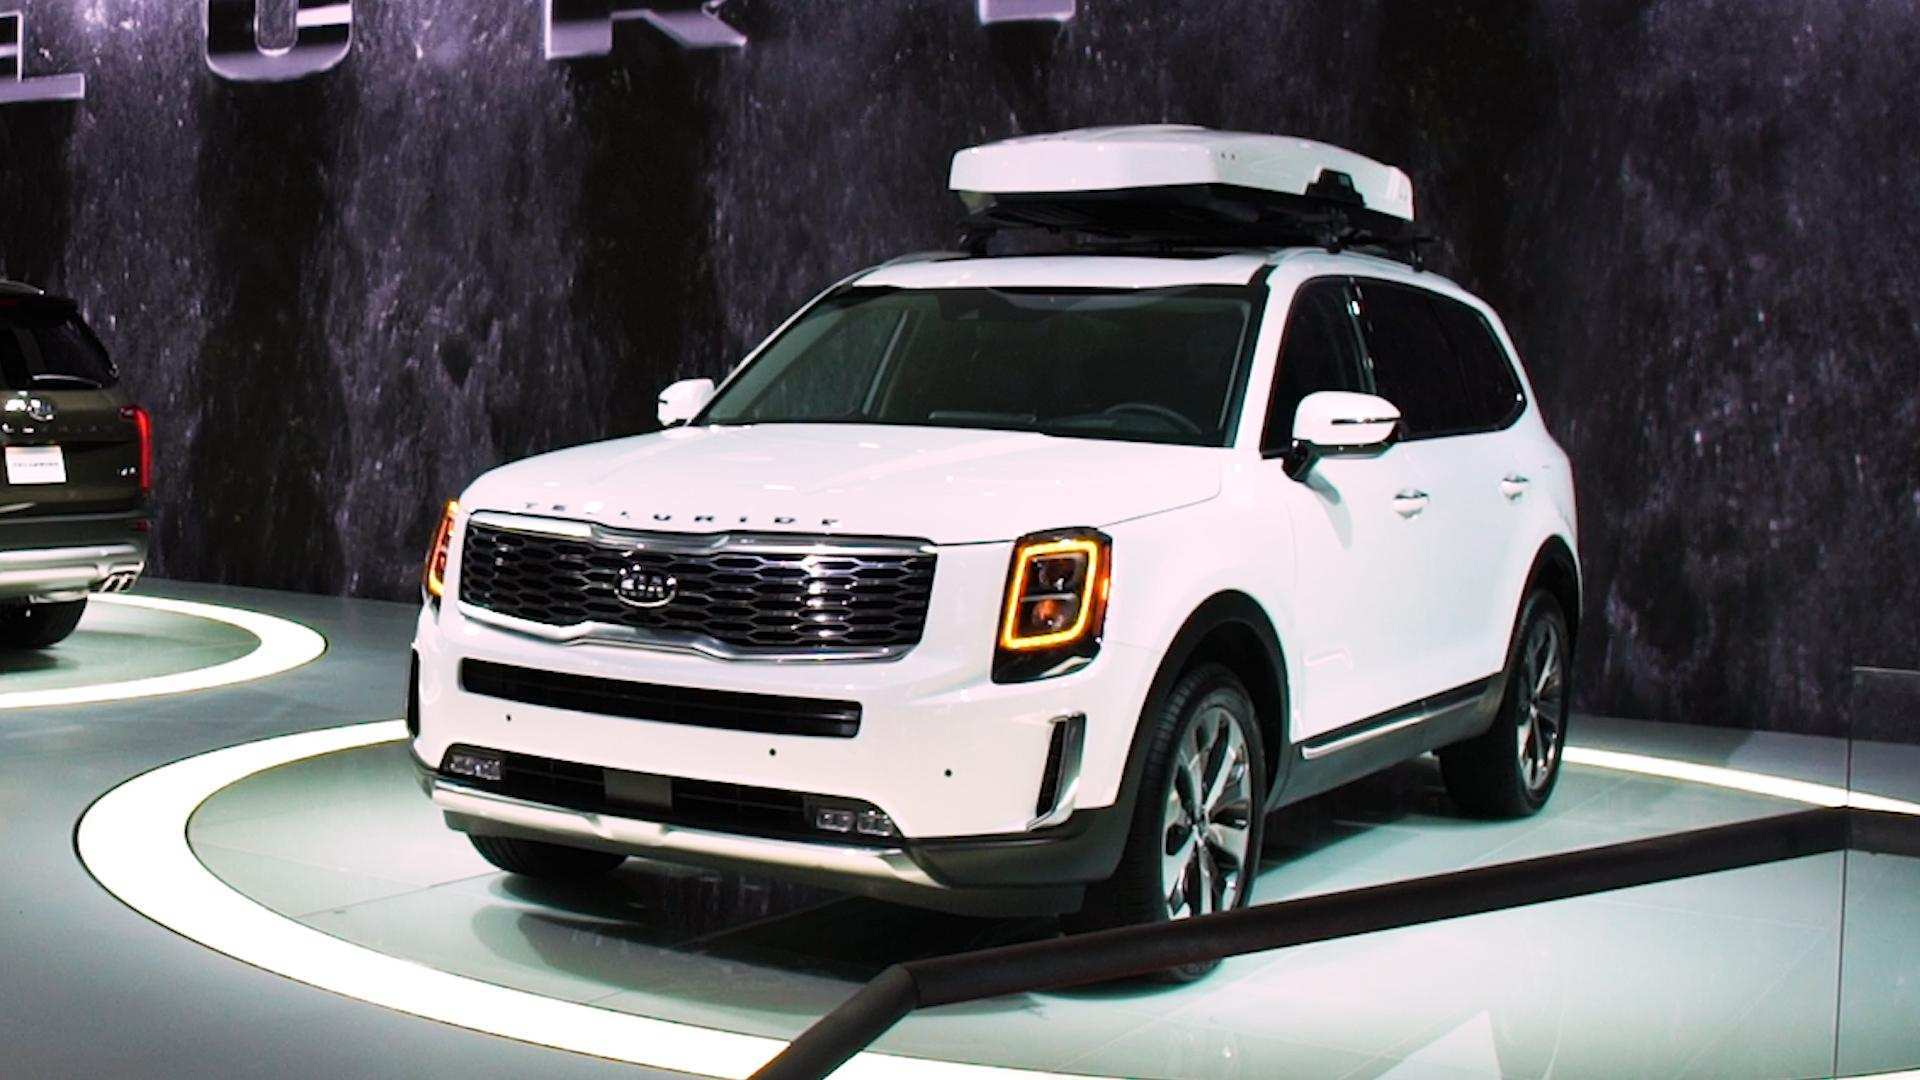 65 Best 2020 Kia Telluride Images Research New